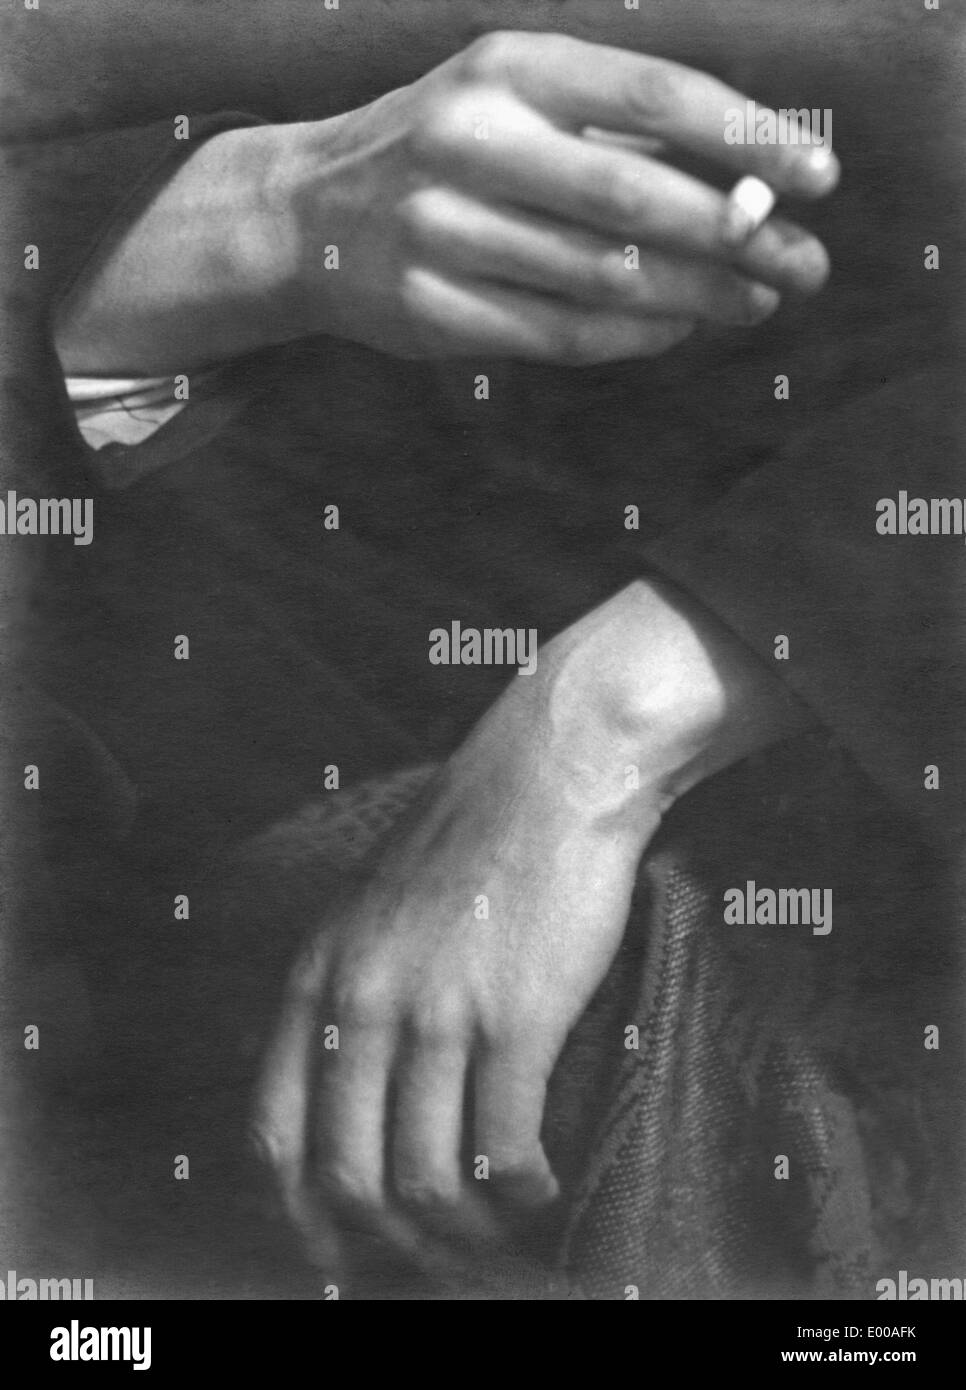 Hands  of an aristocrat - Stock Image